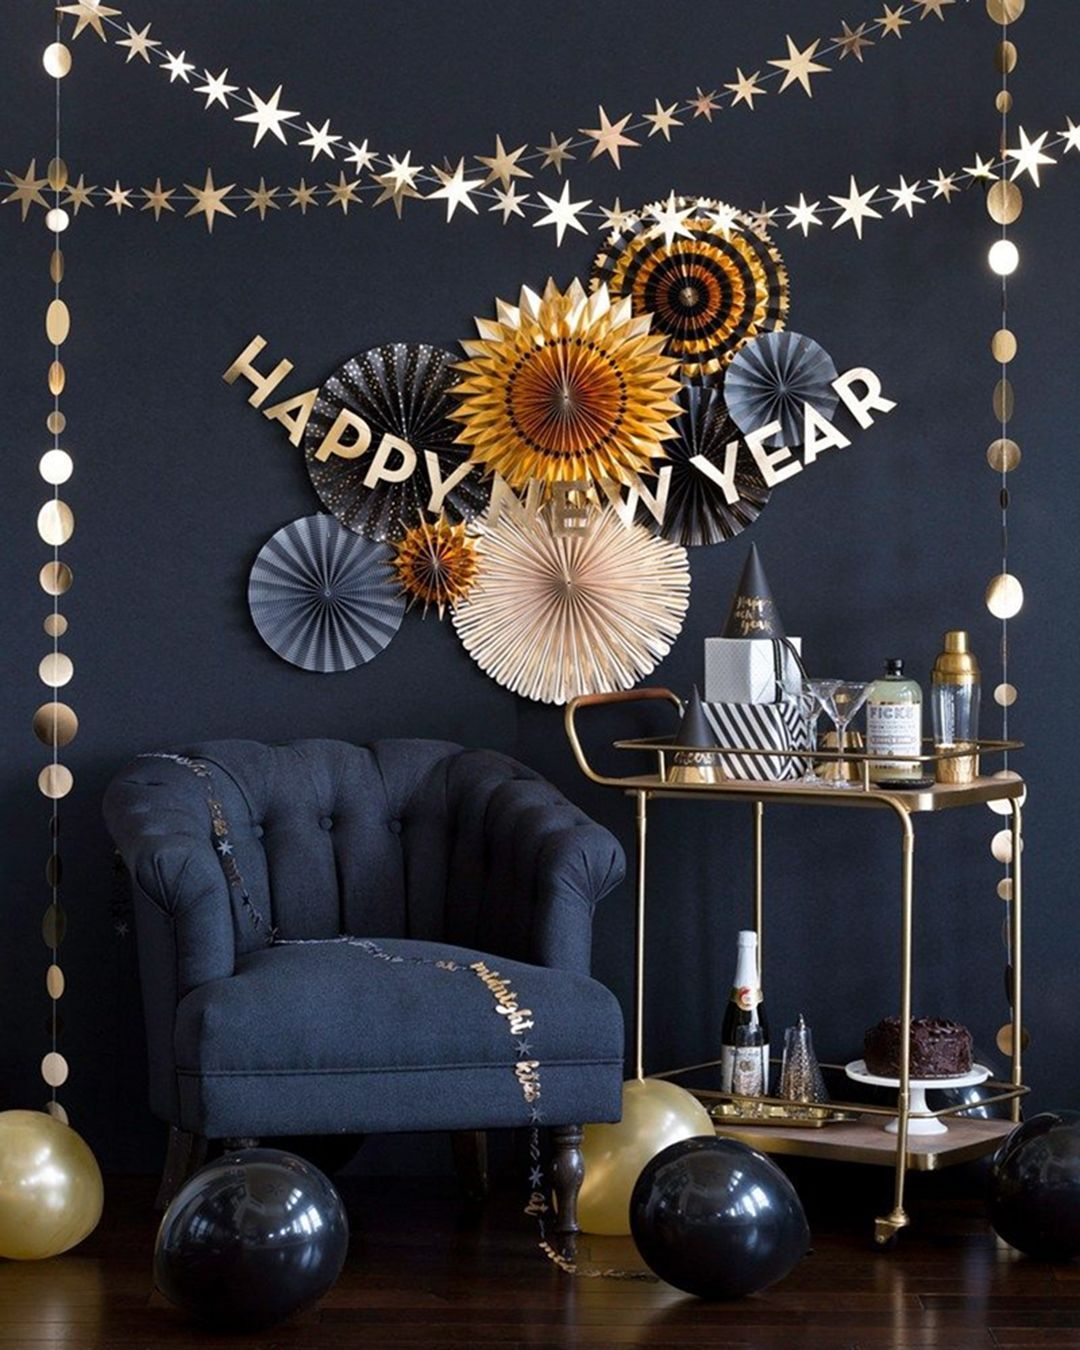 Adorable 10 DIY New Year 2020 Decorations For Easy And Low